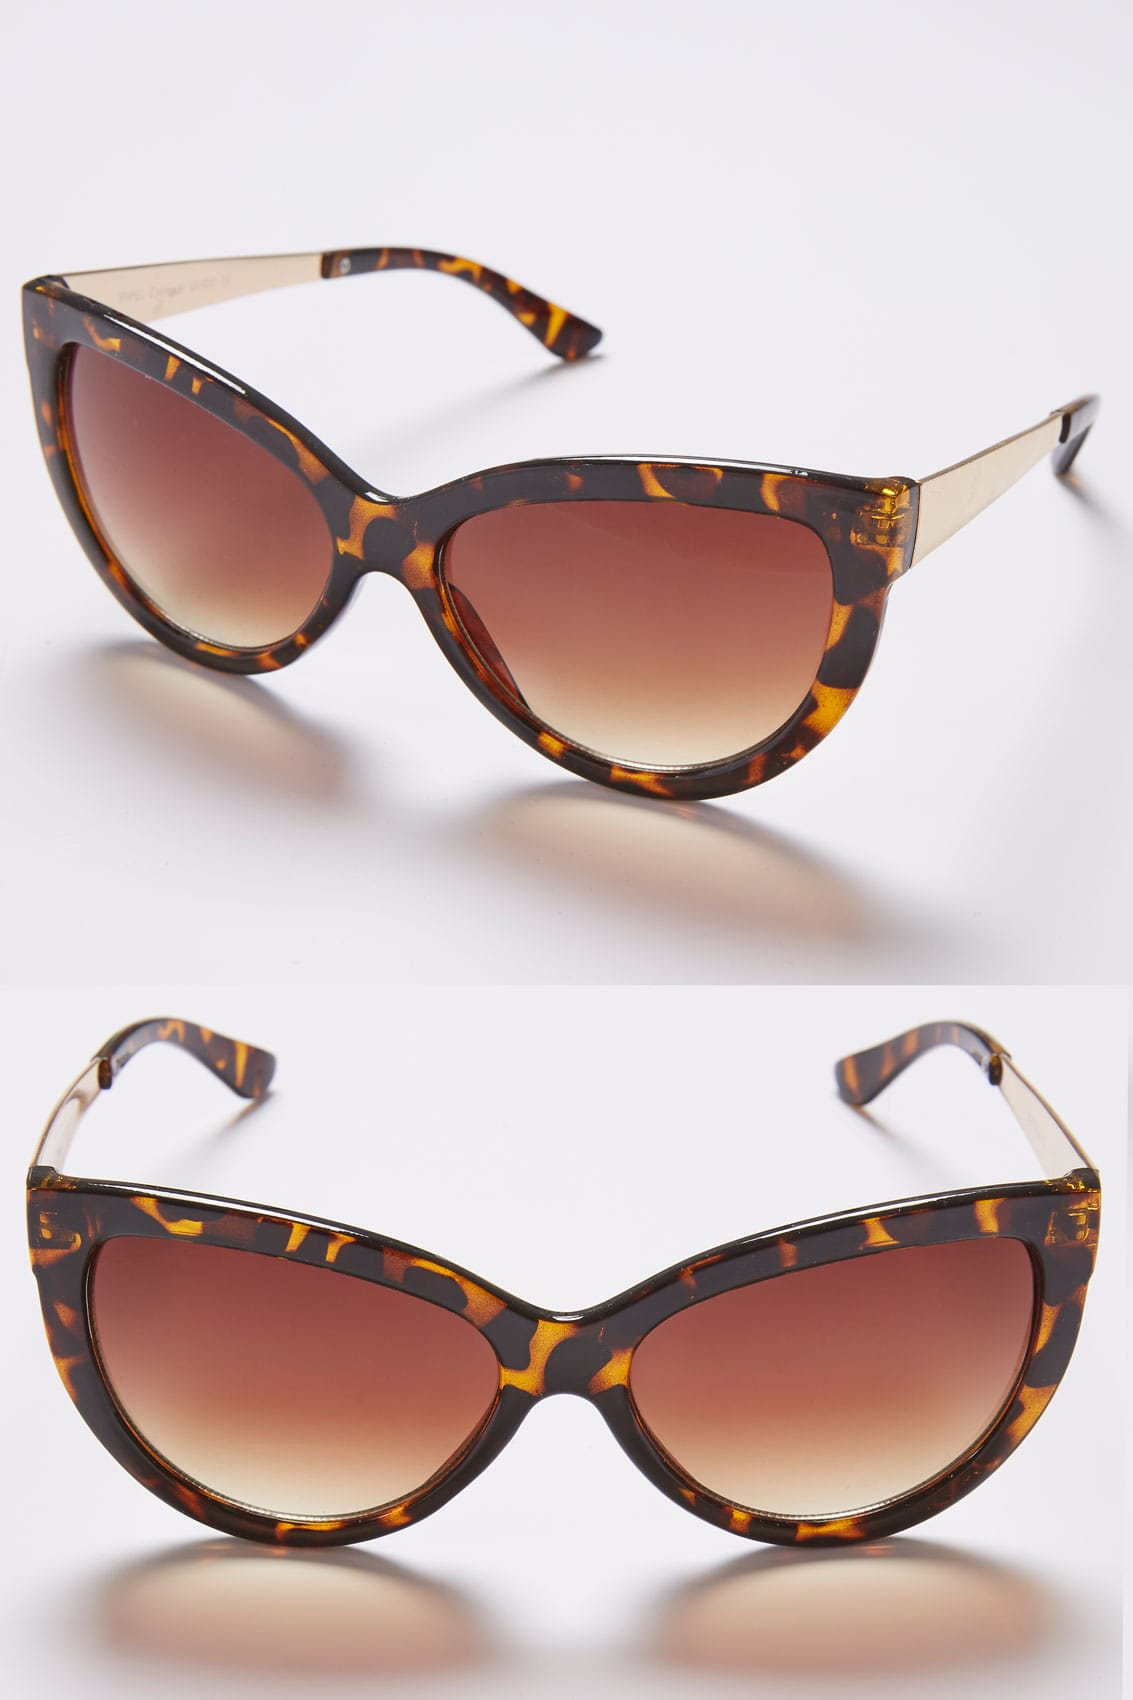 Tortoiseshell Cat Eye Sunglasses With Gold Tone Arms